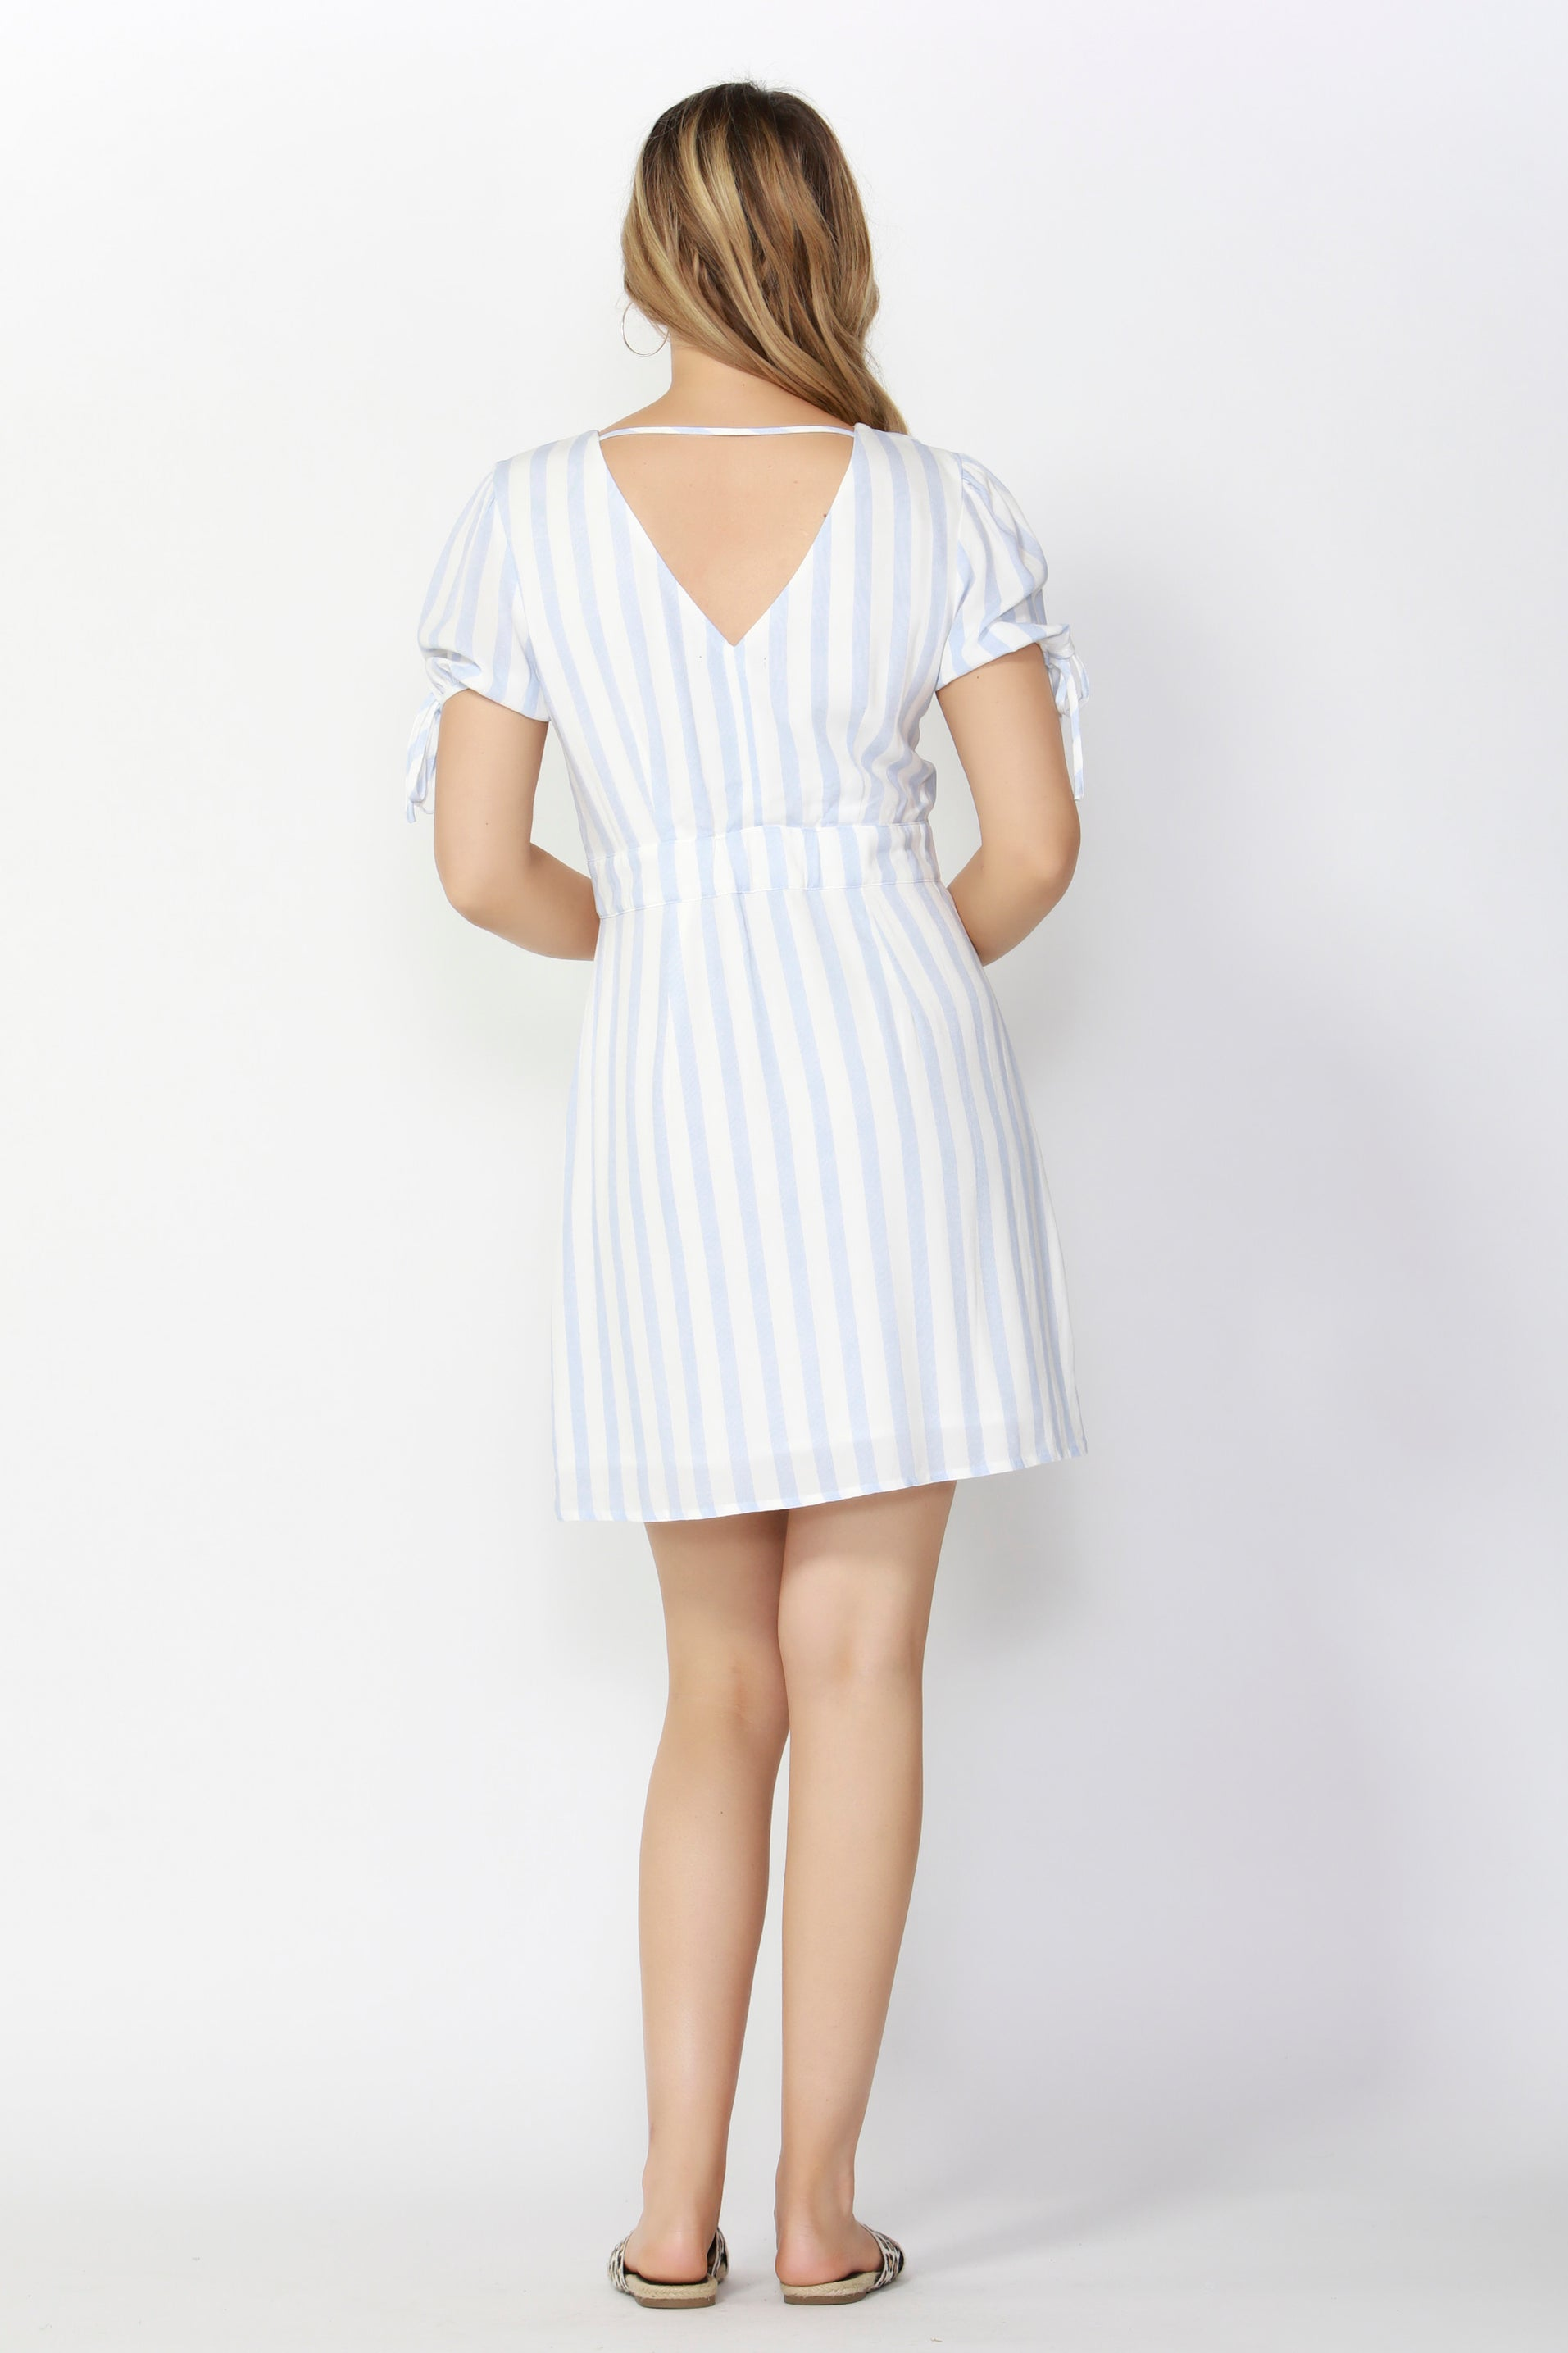 Sass Summertime Dress in White with Sky Blue Stripe